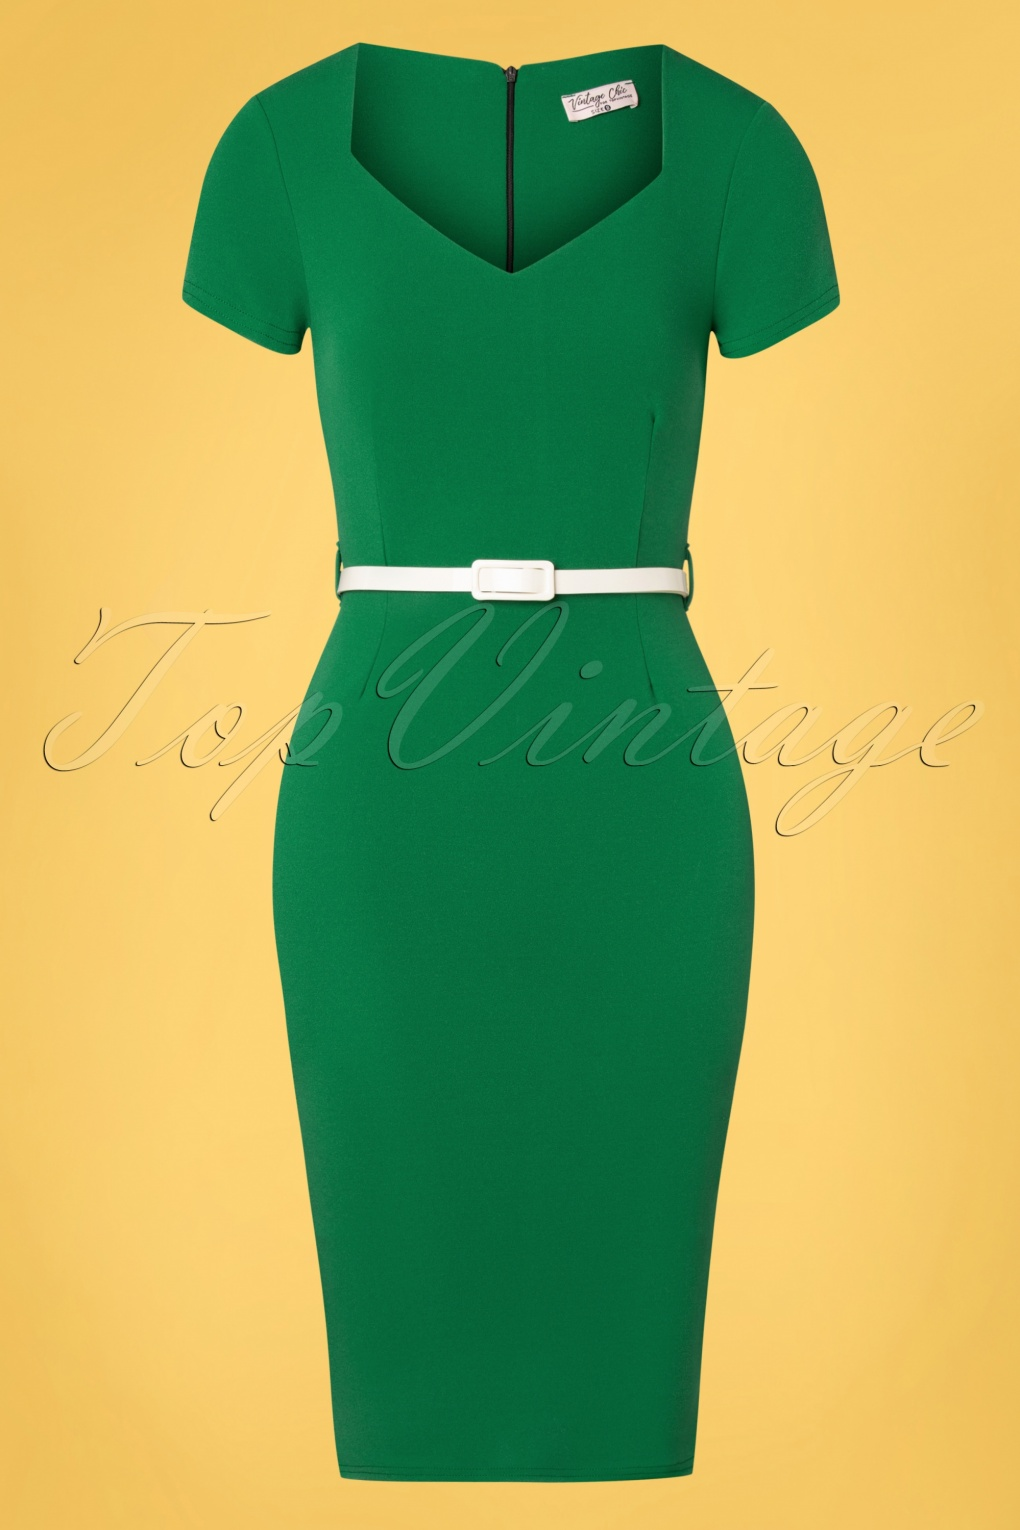 1950s Dresses, 50s Dresses | 1950s Style Dresses 50s Melany Pencil Dress in Emerald Green £53.99 AT vintagedancer.com